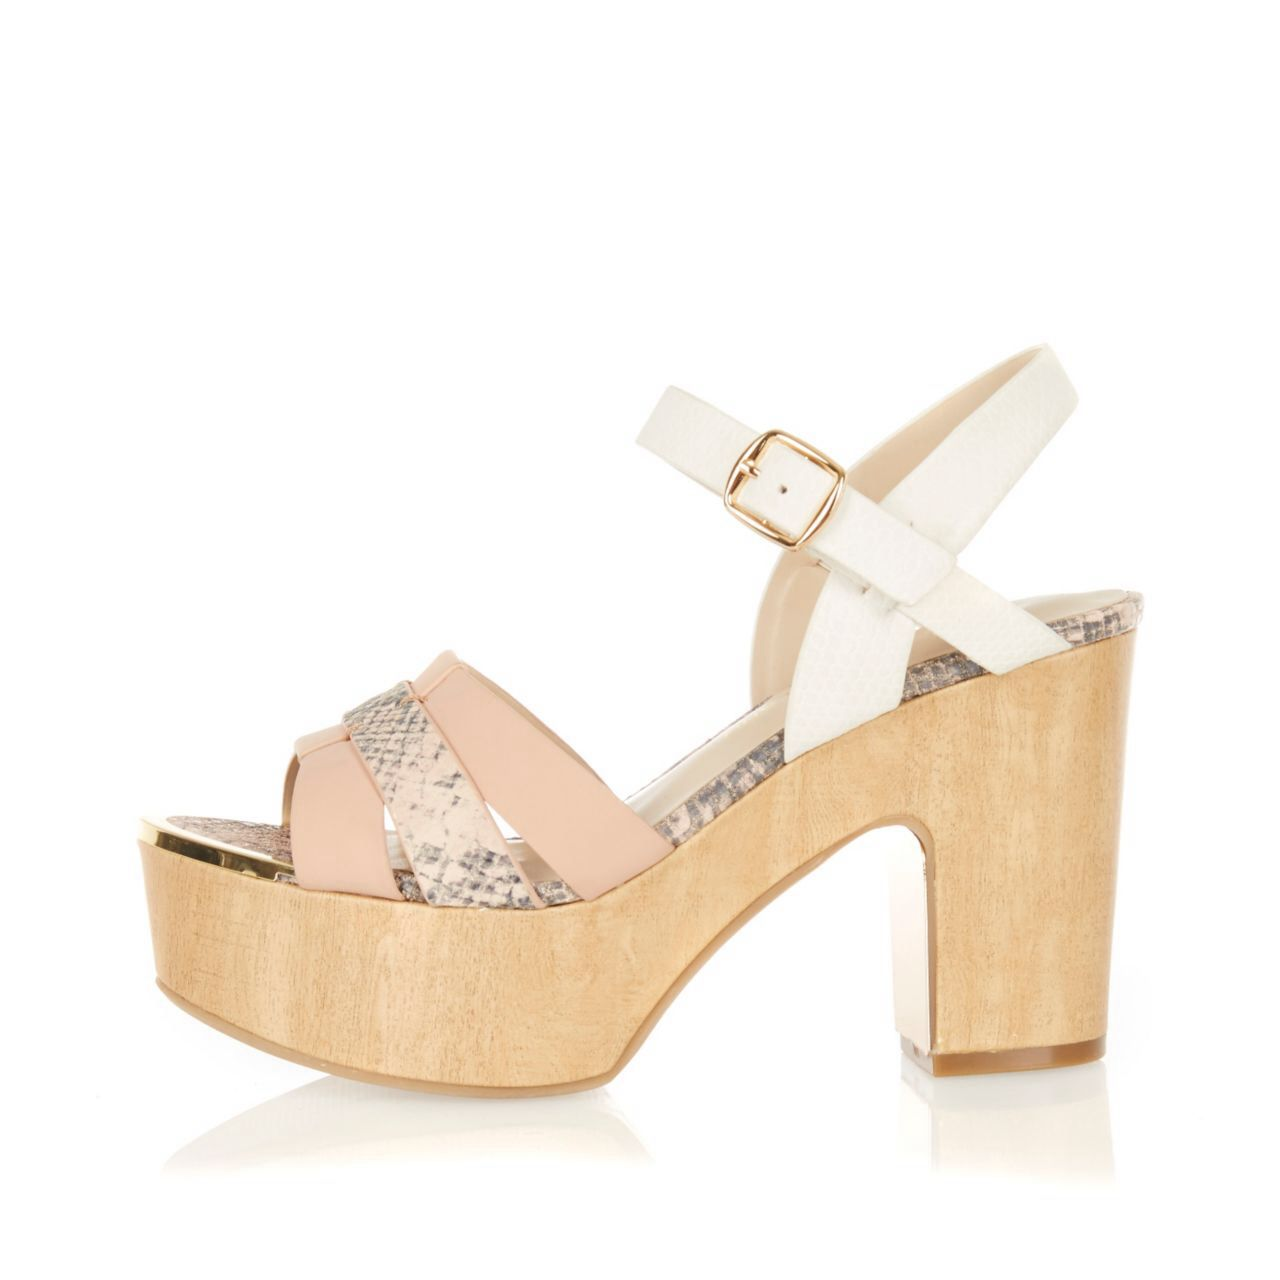 Checkout this Light pink wooden platforms from River Island